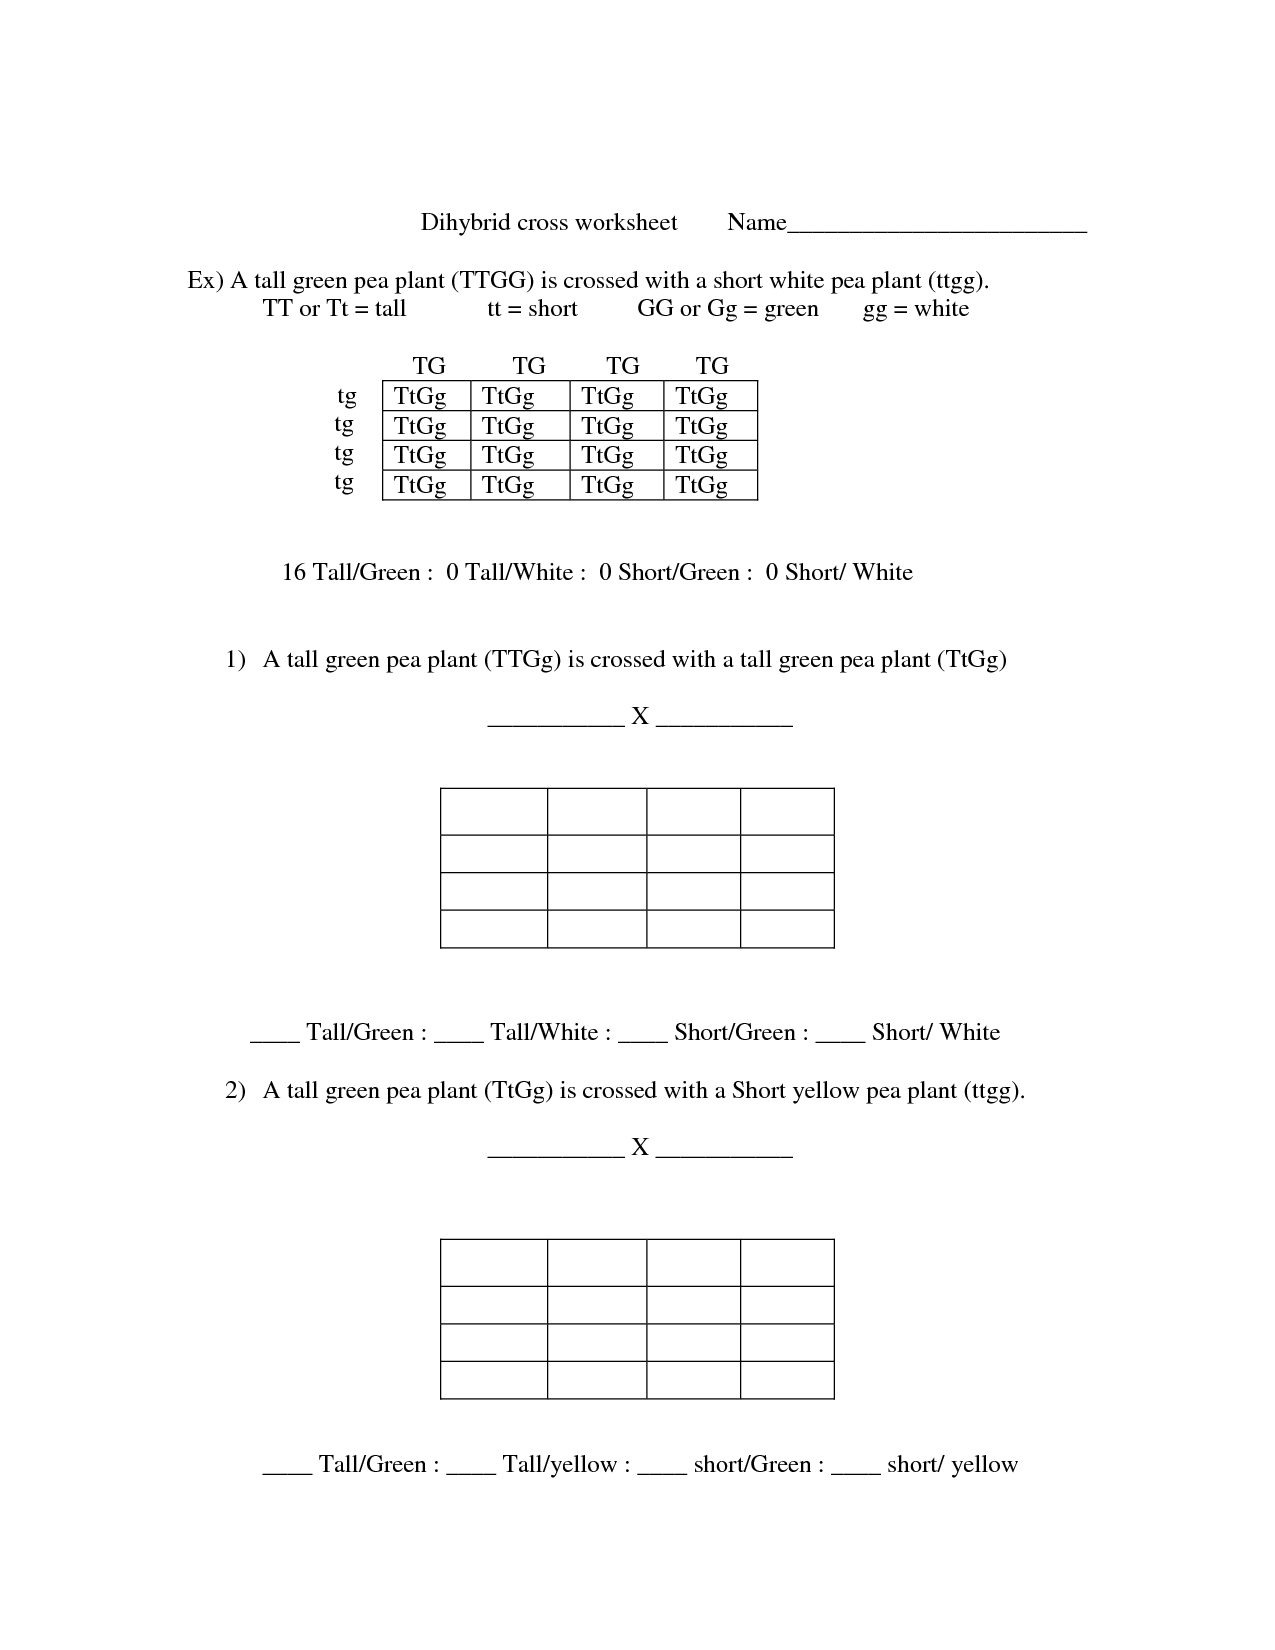 19 Best Images Of Dihybrid Worksheet With Answer Key